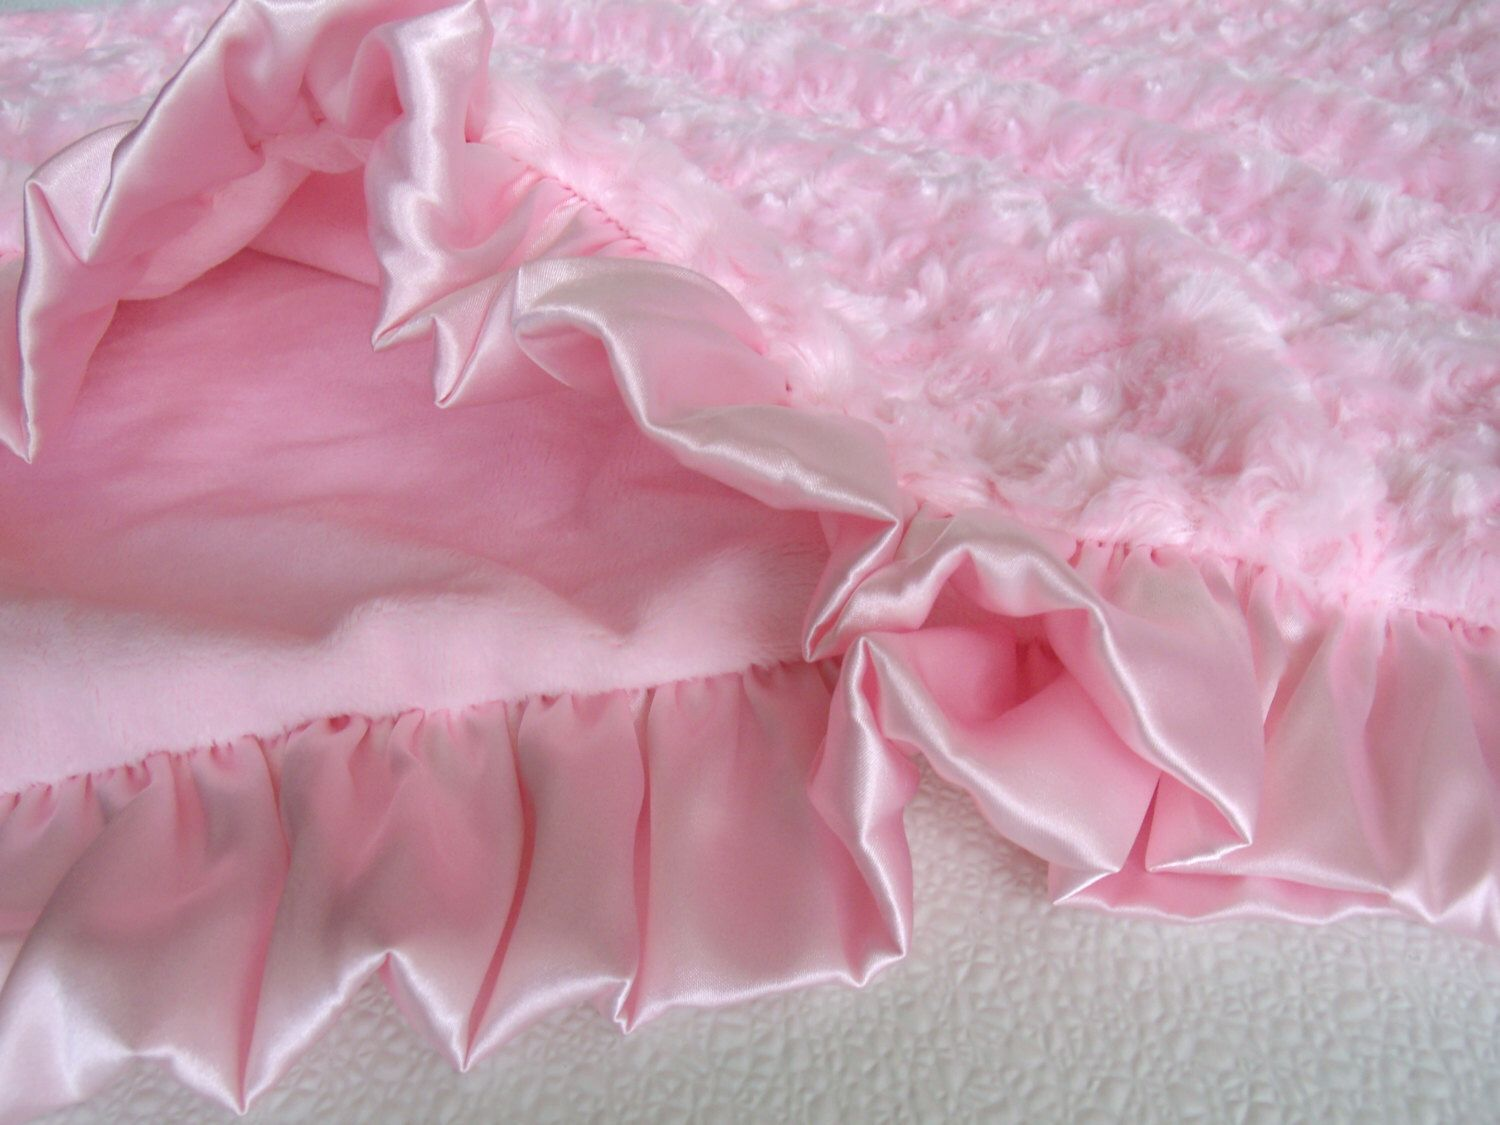 Smooth Pink Minky and Rose Swirl Baby Blanket by MinkyBabyGifts on Etsy https://www.etsy.com/listing/189997955/smooth-pink-minky-and-rose-swirl-baby